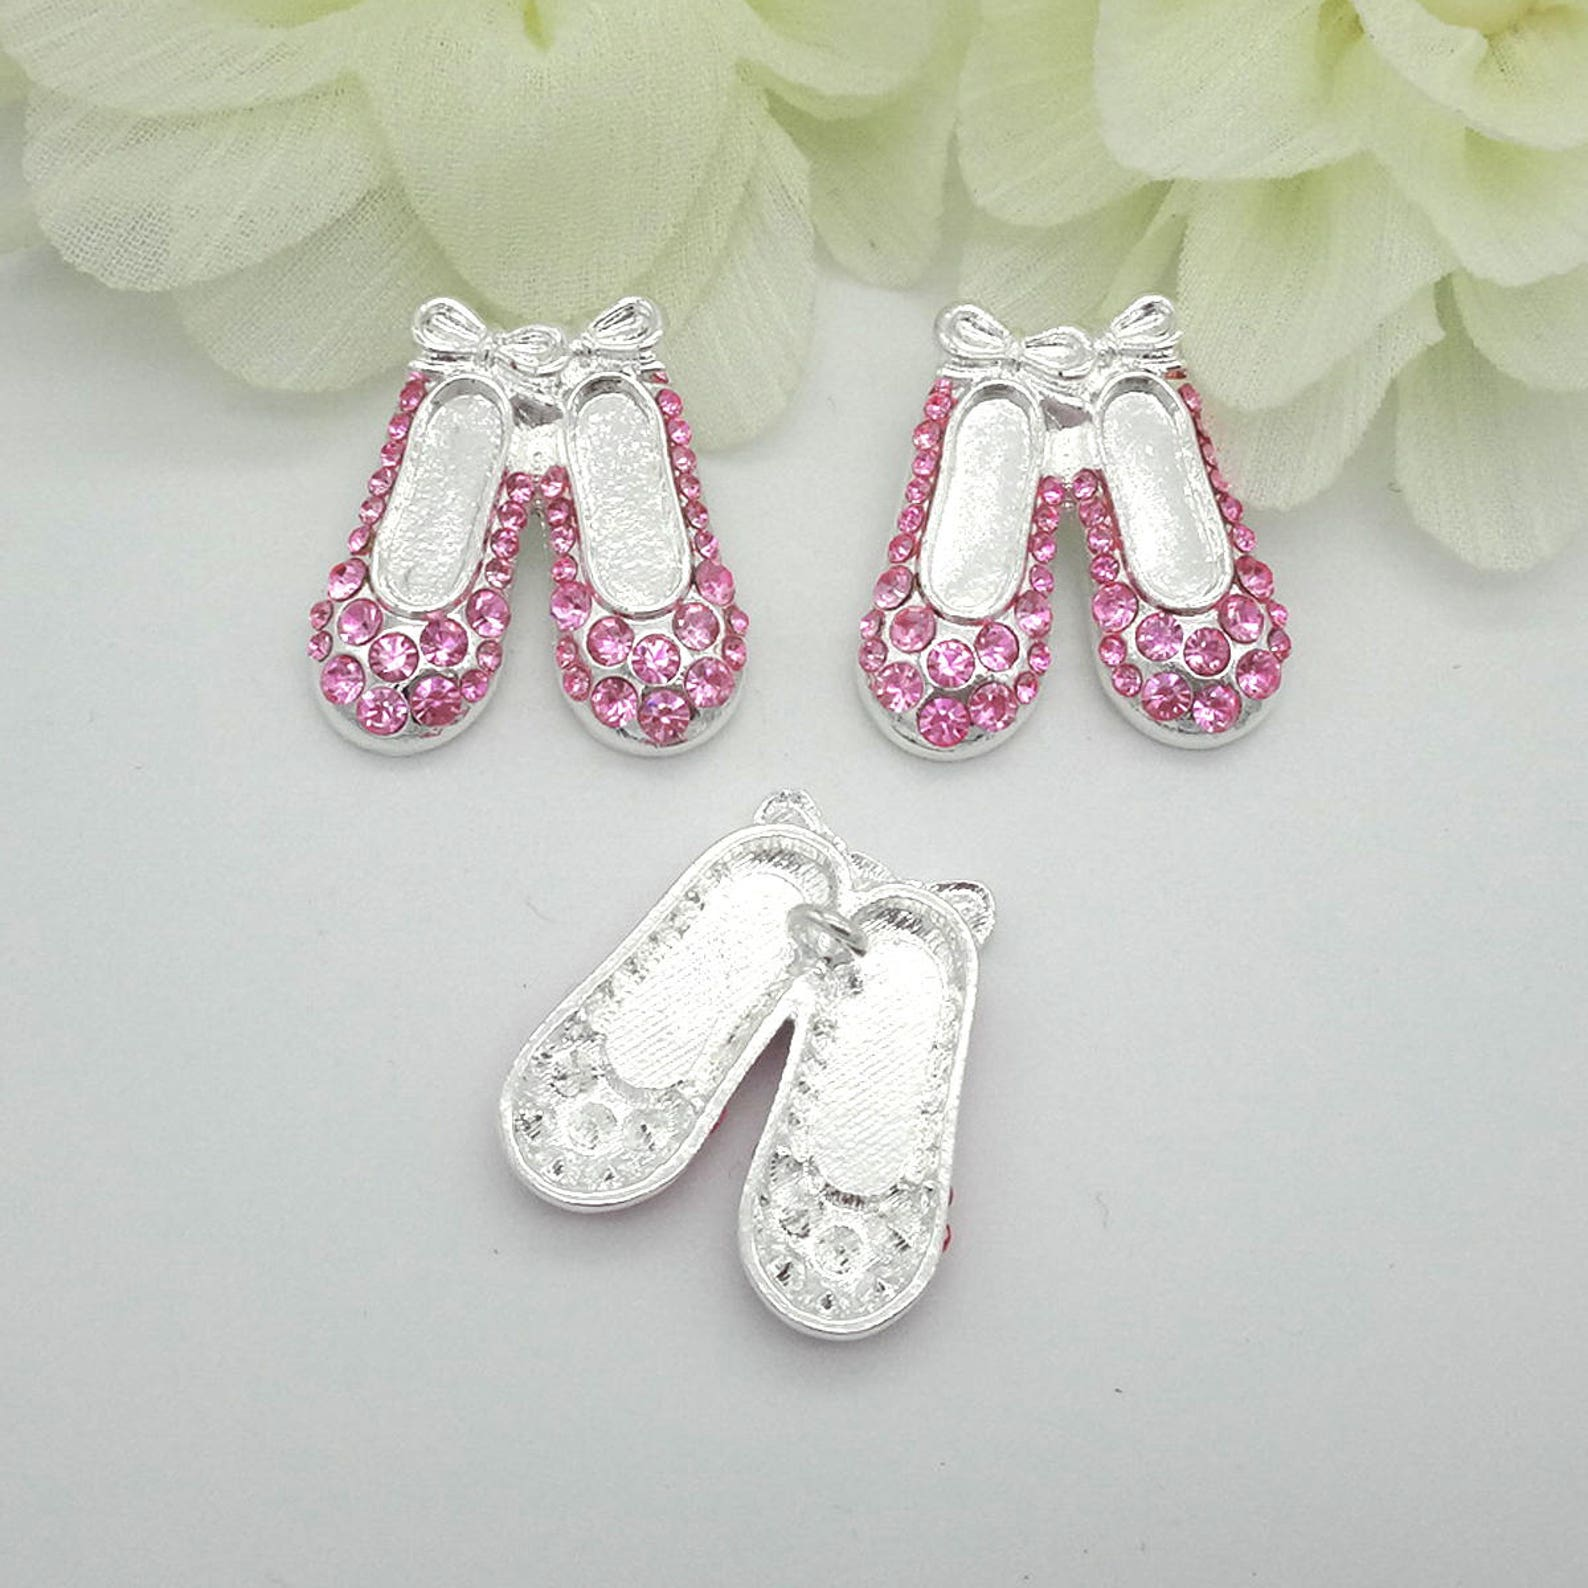 pink ballet slipper buttons rhinestone buttons pink ballerina shoe buttons rhinestone buttons coat buttons fashion buttons 21mm